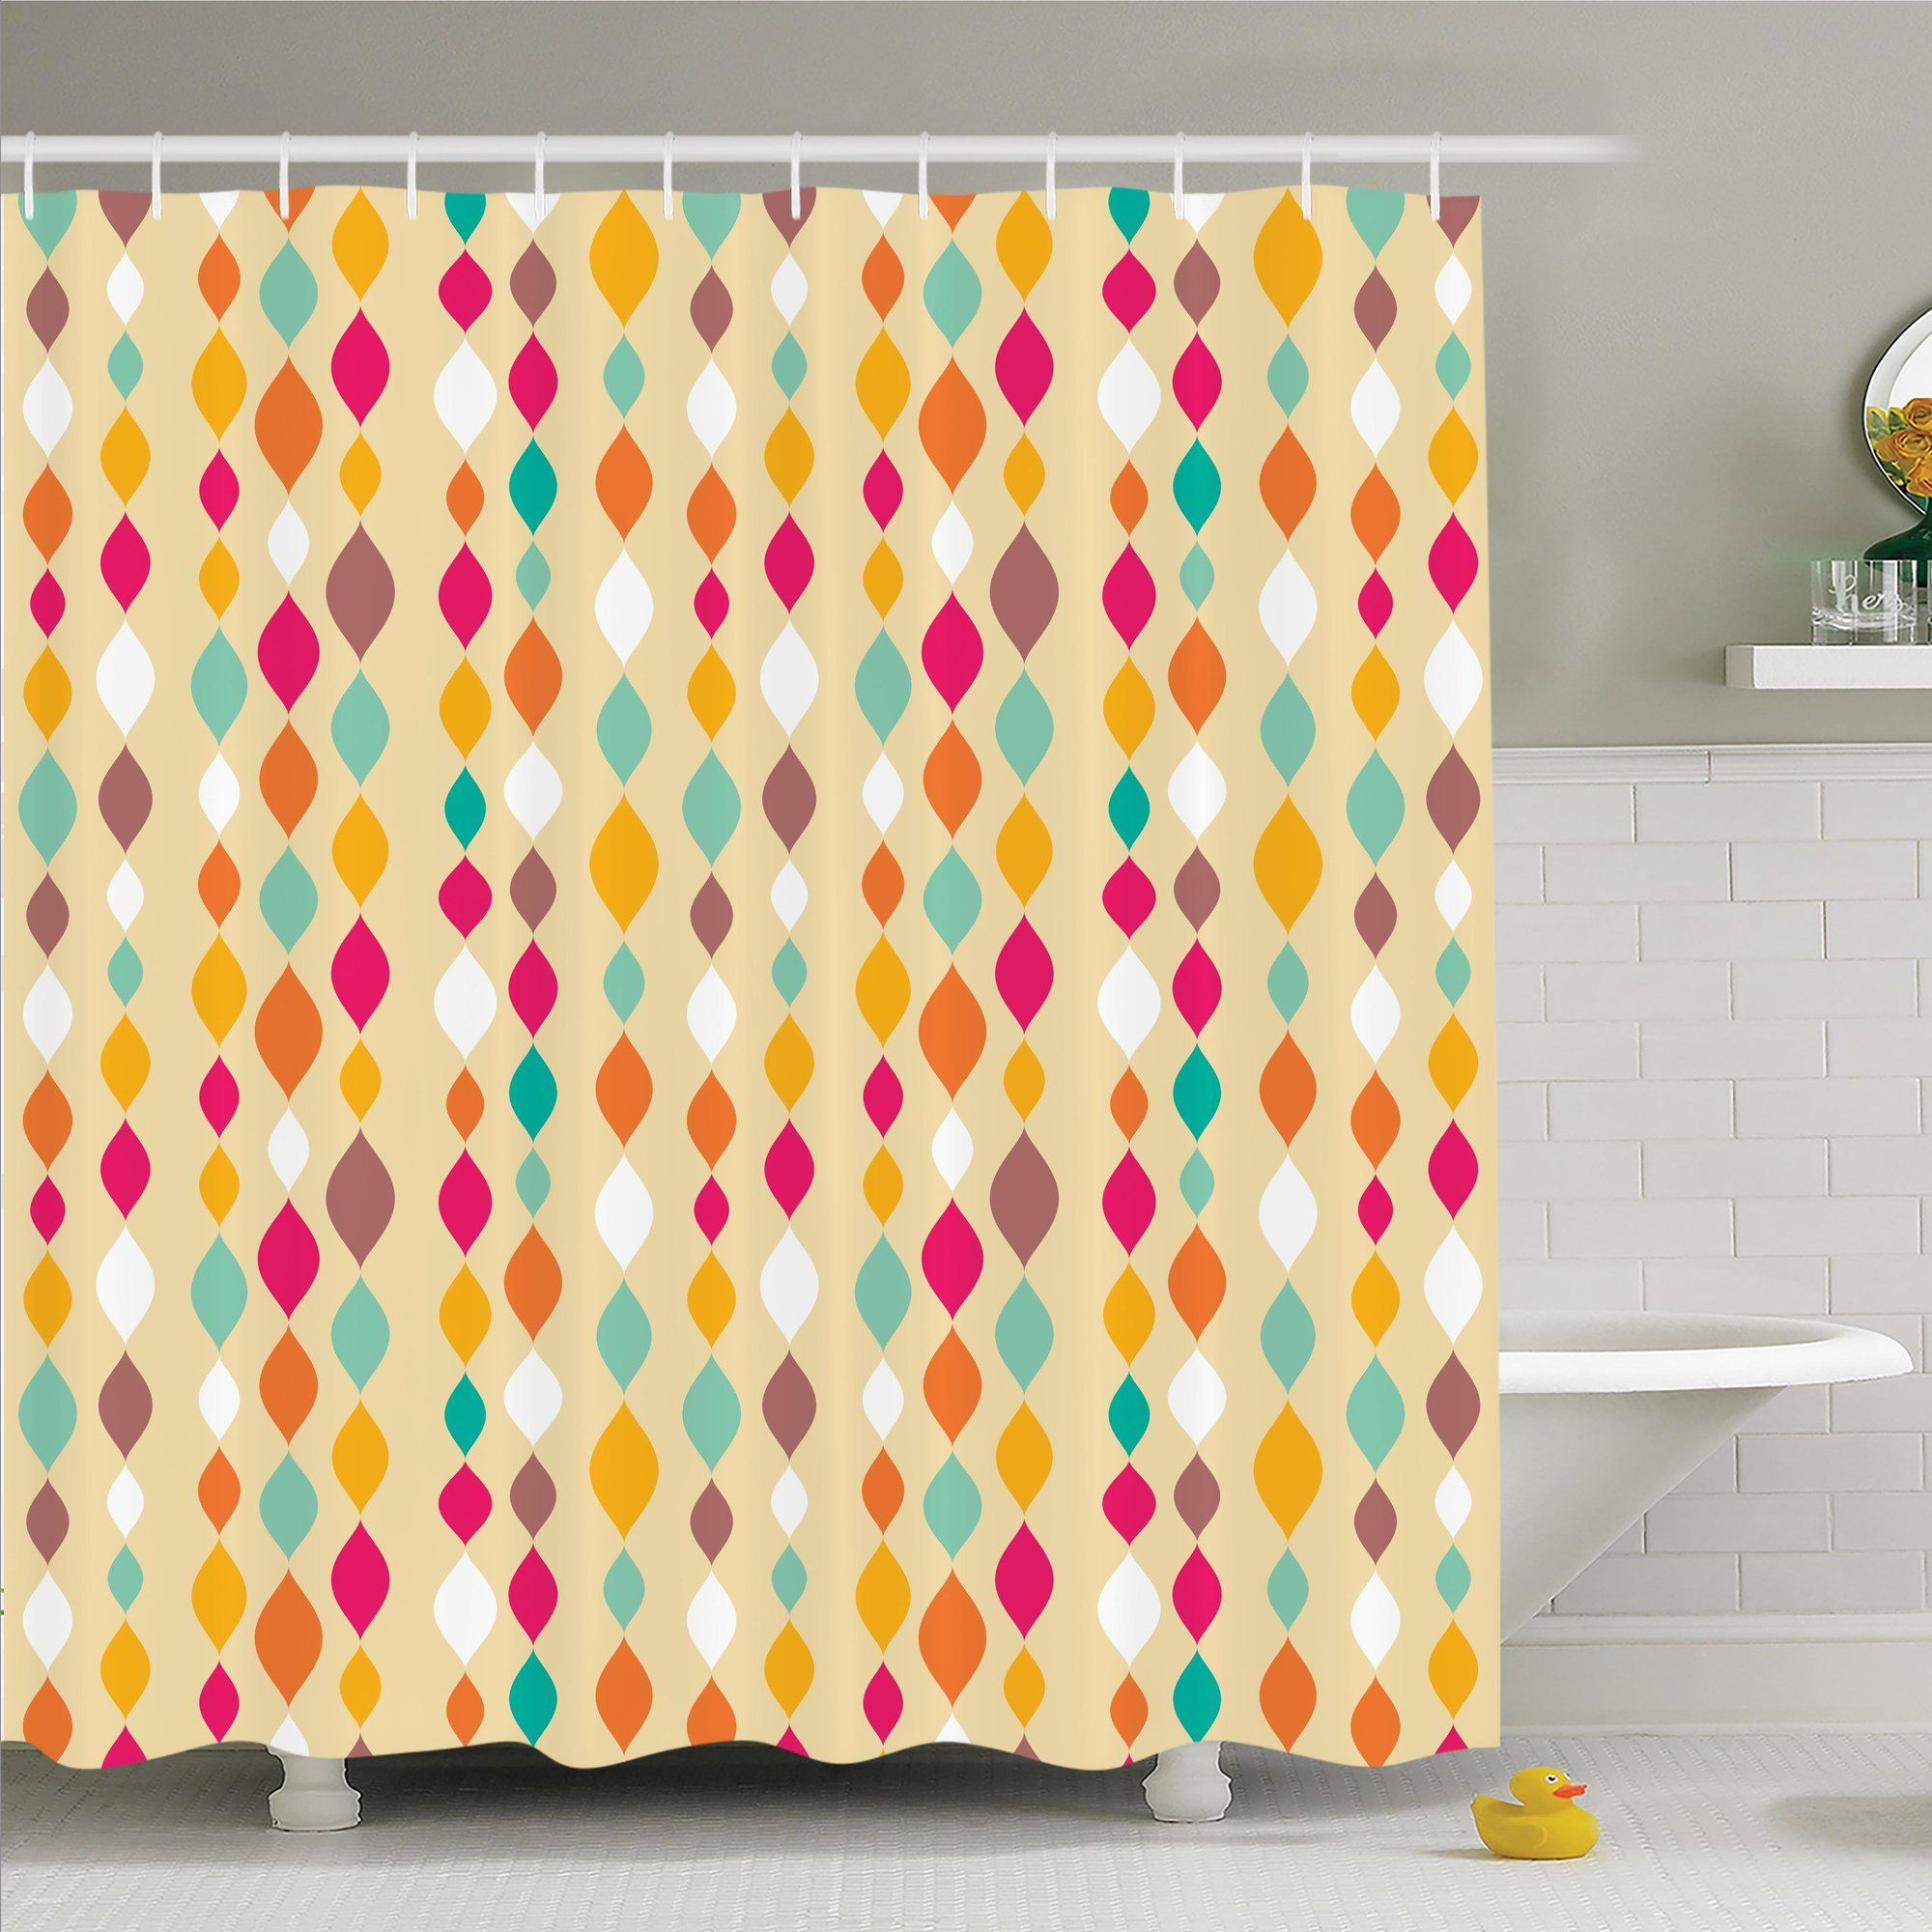 Vintage Retro Colorful Circles Shower Curtain Set Shower Curtain